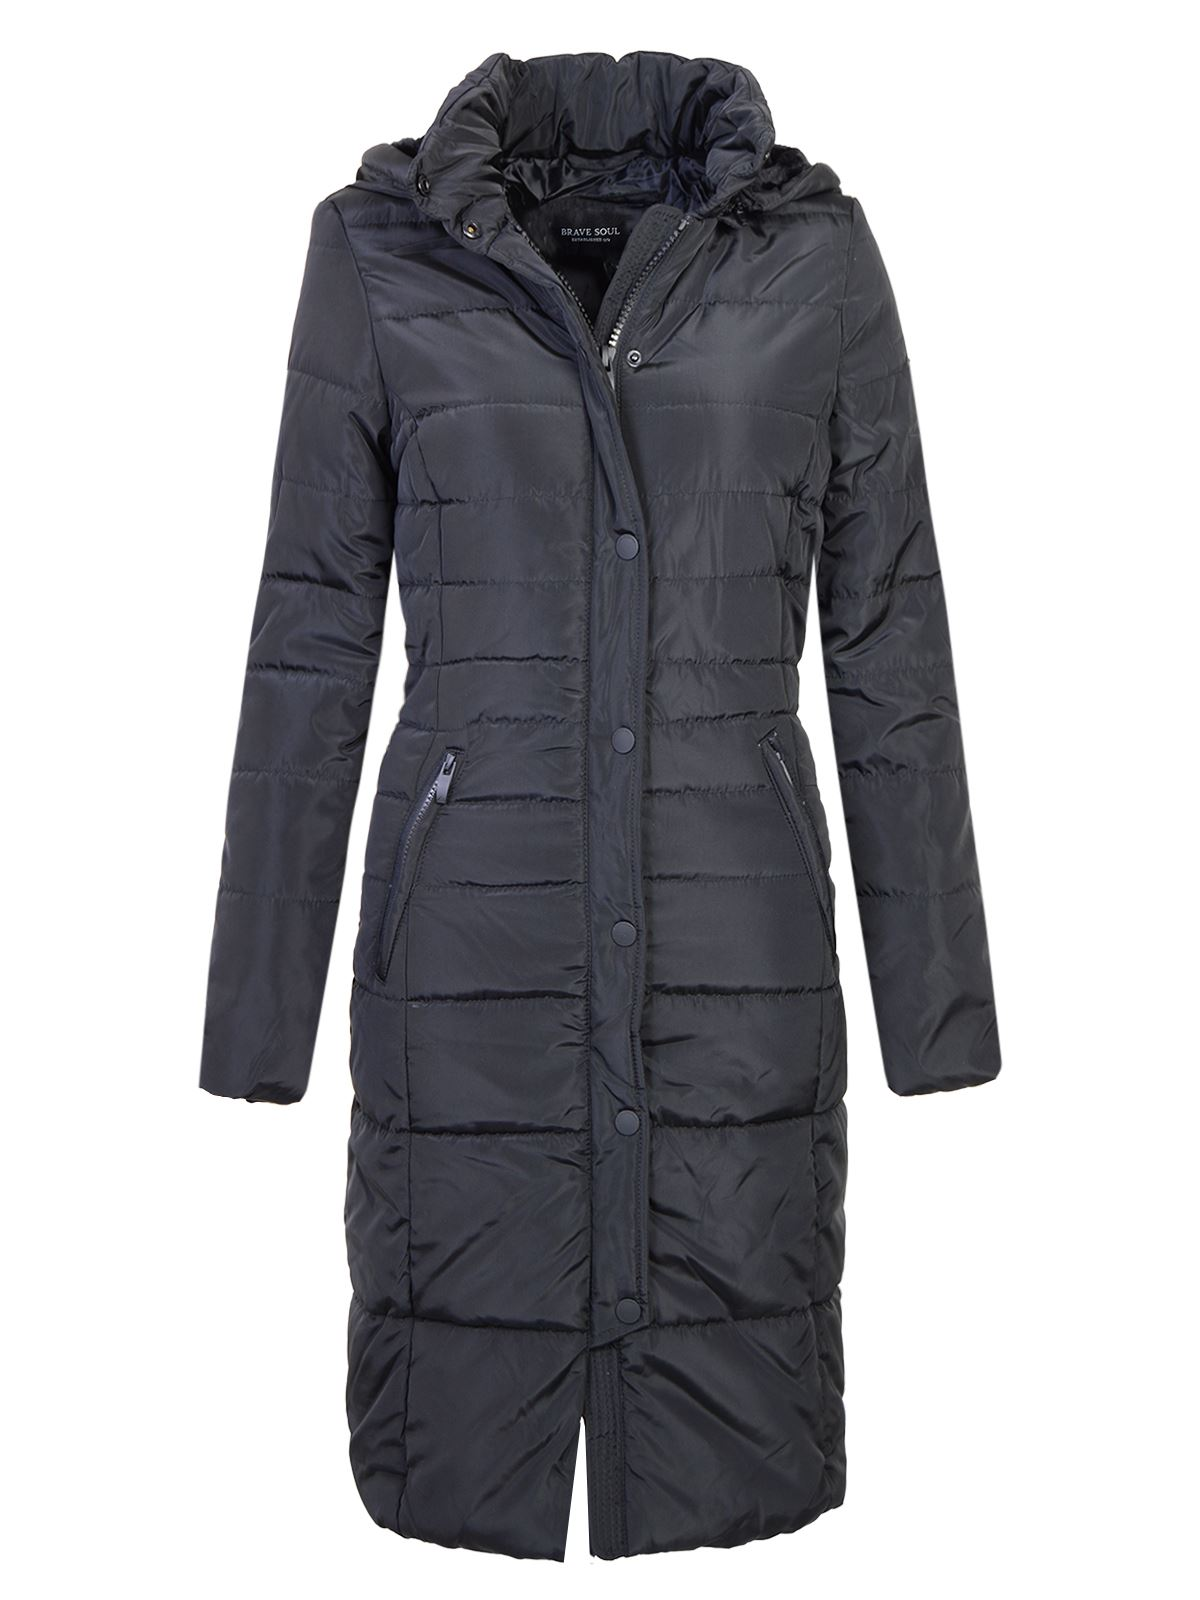 The water-resistant Florence Womens Long Padded Jacket is ideal for the winter. Designed in a longer length with microfiber filler, it's lightweight and retains heat well, keeping you warm and toasty when you're out and about.